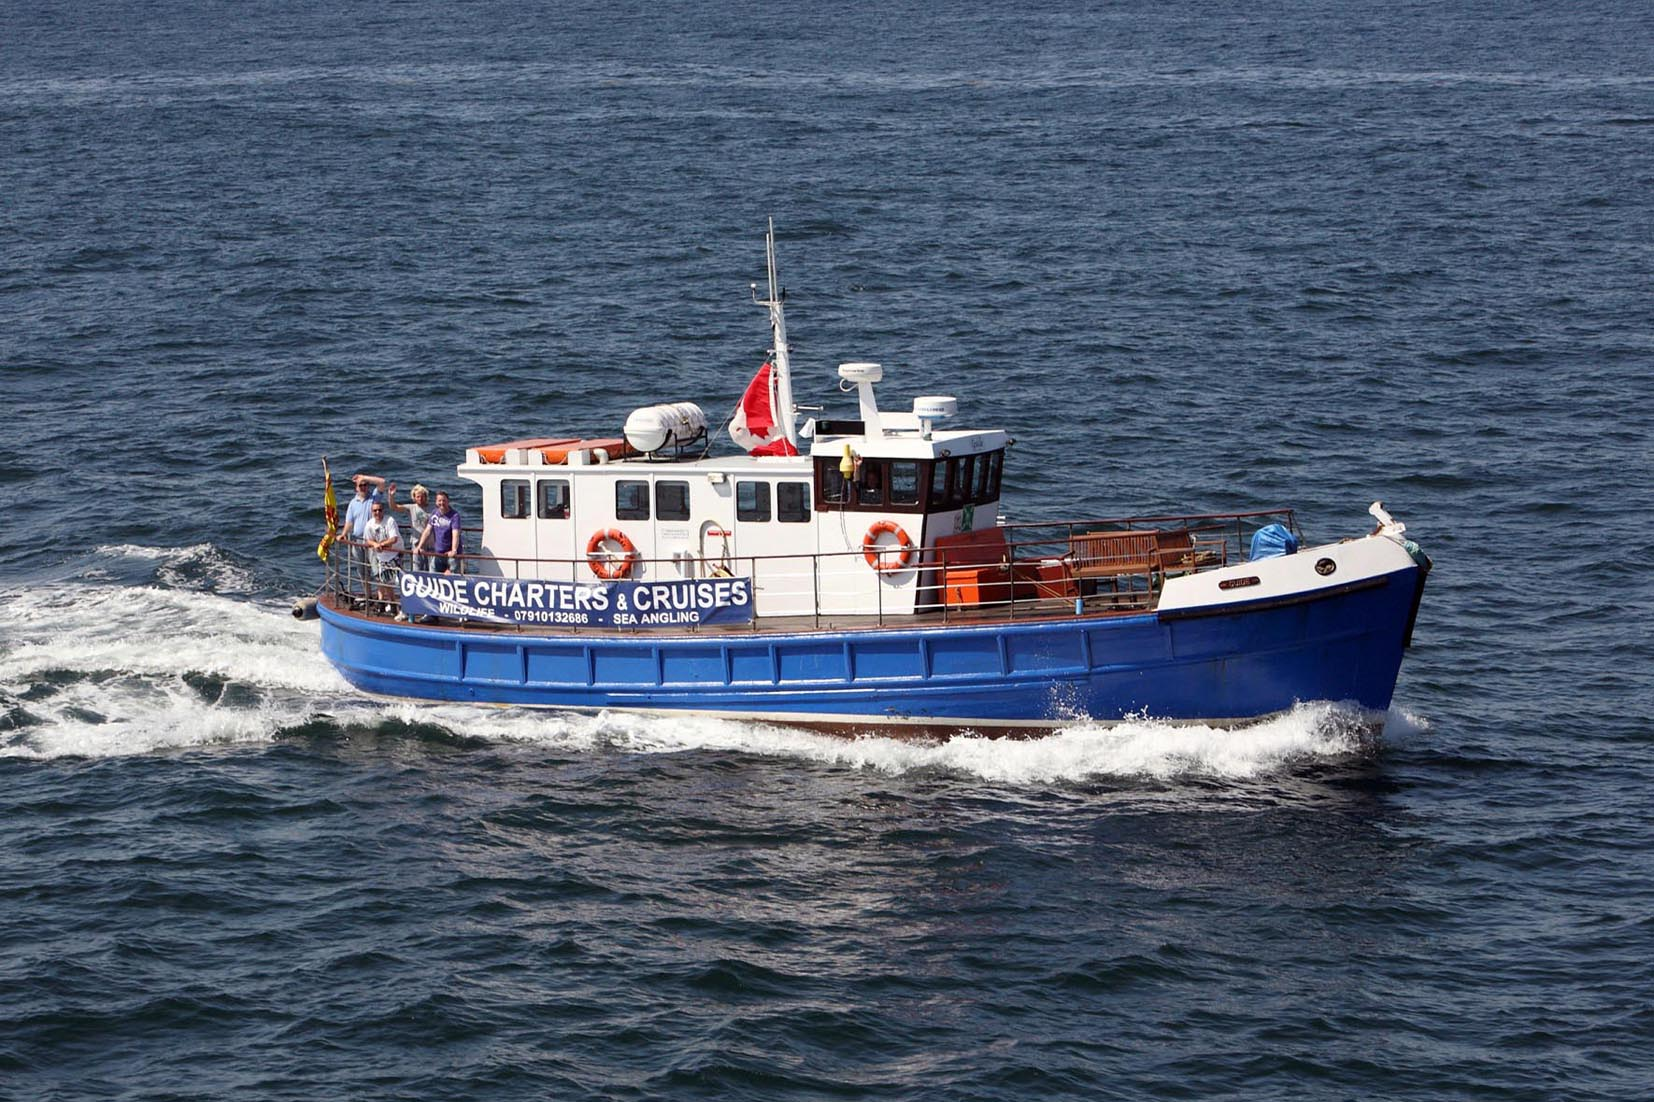 Guide, based in Fraserburgh